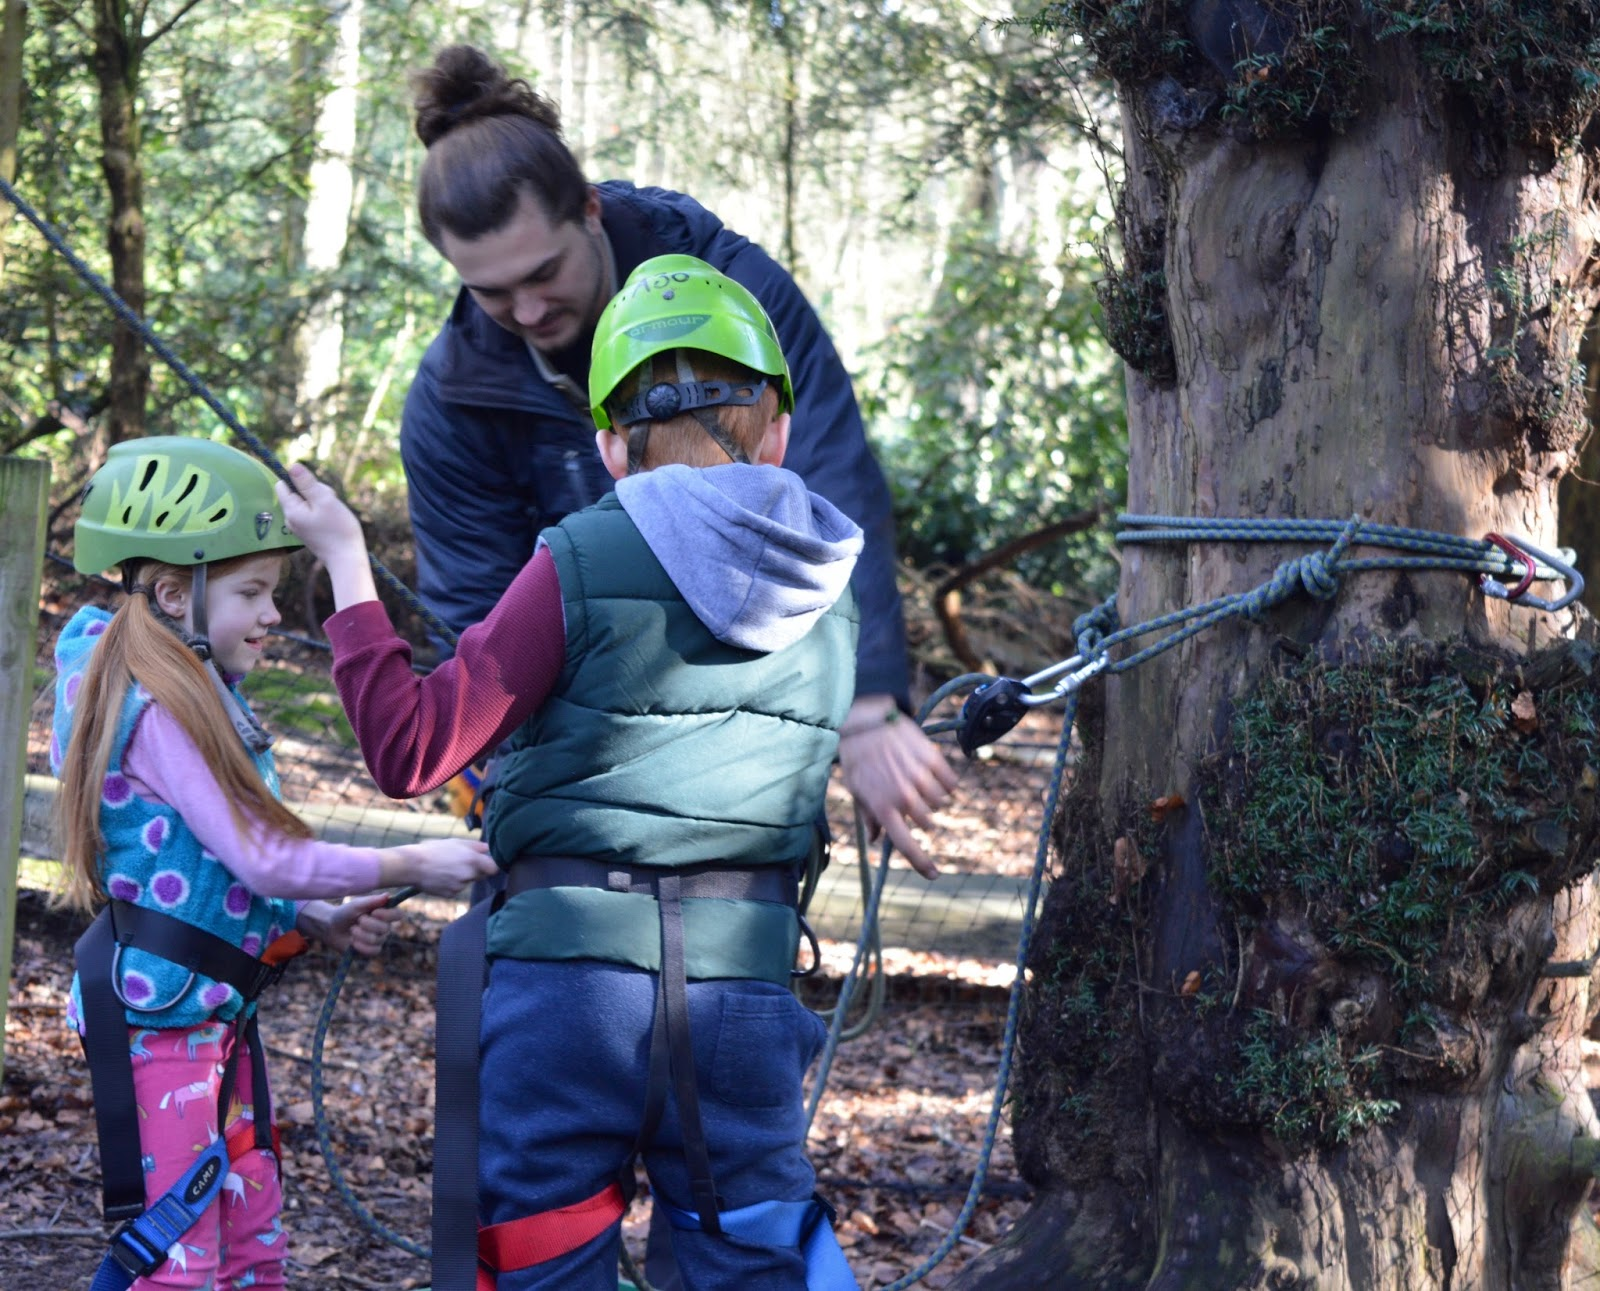 Beamish Wild | School Holiday Club & Activities in County Durham | North East England - ropes